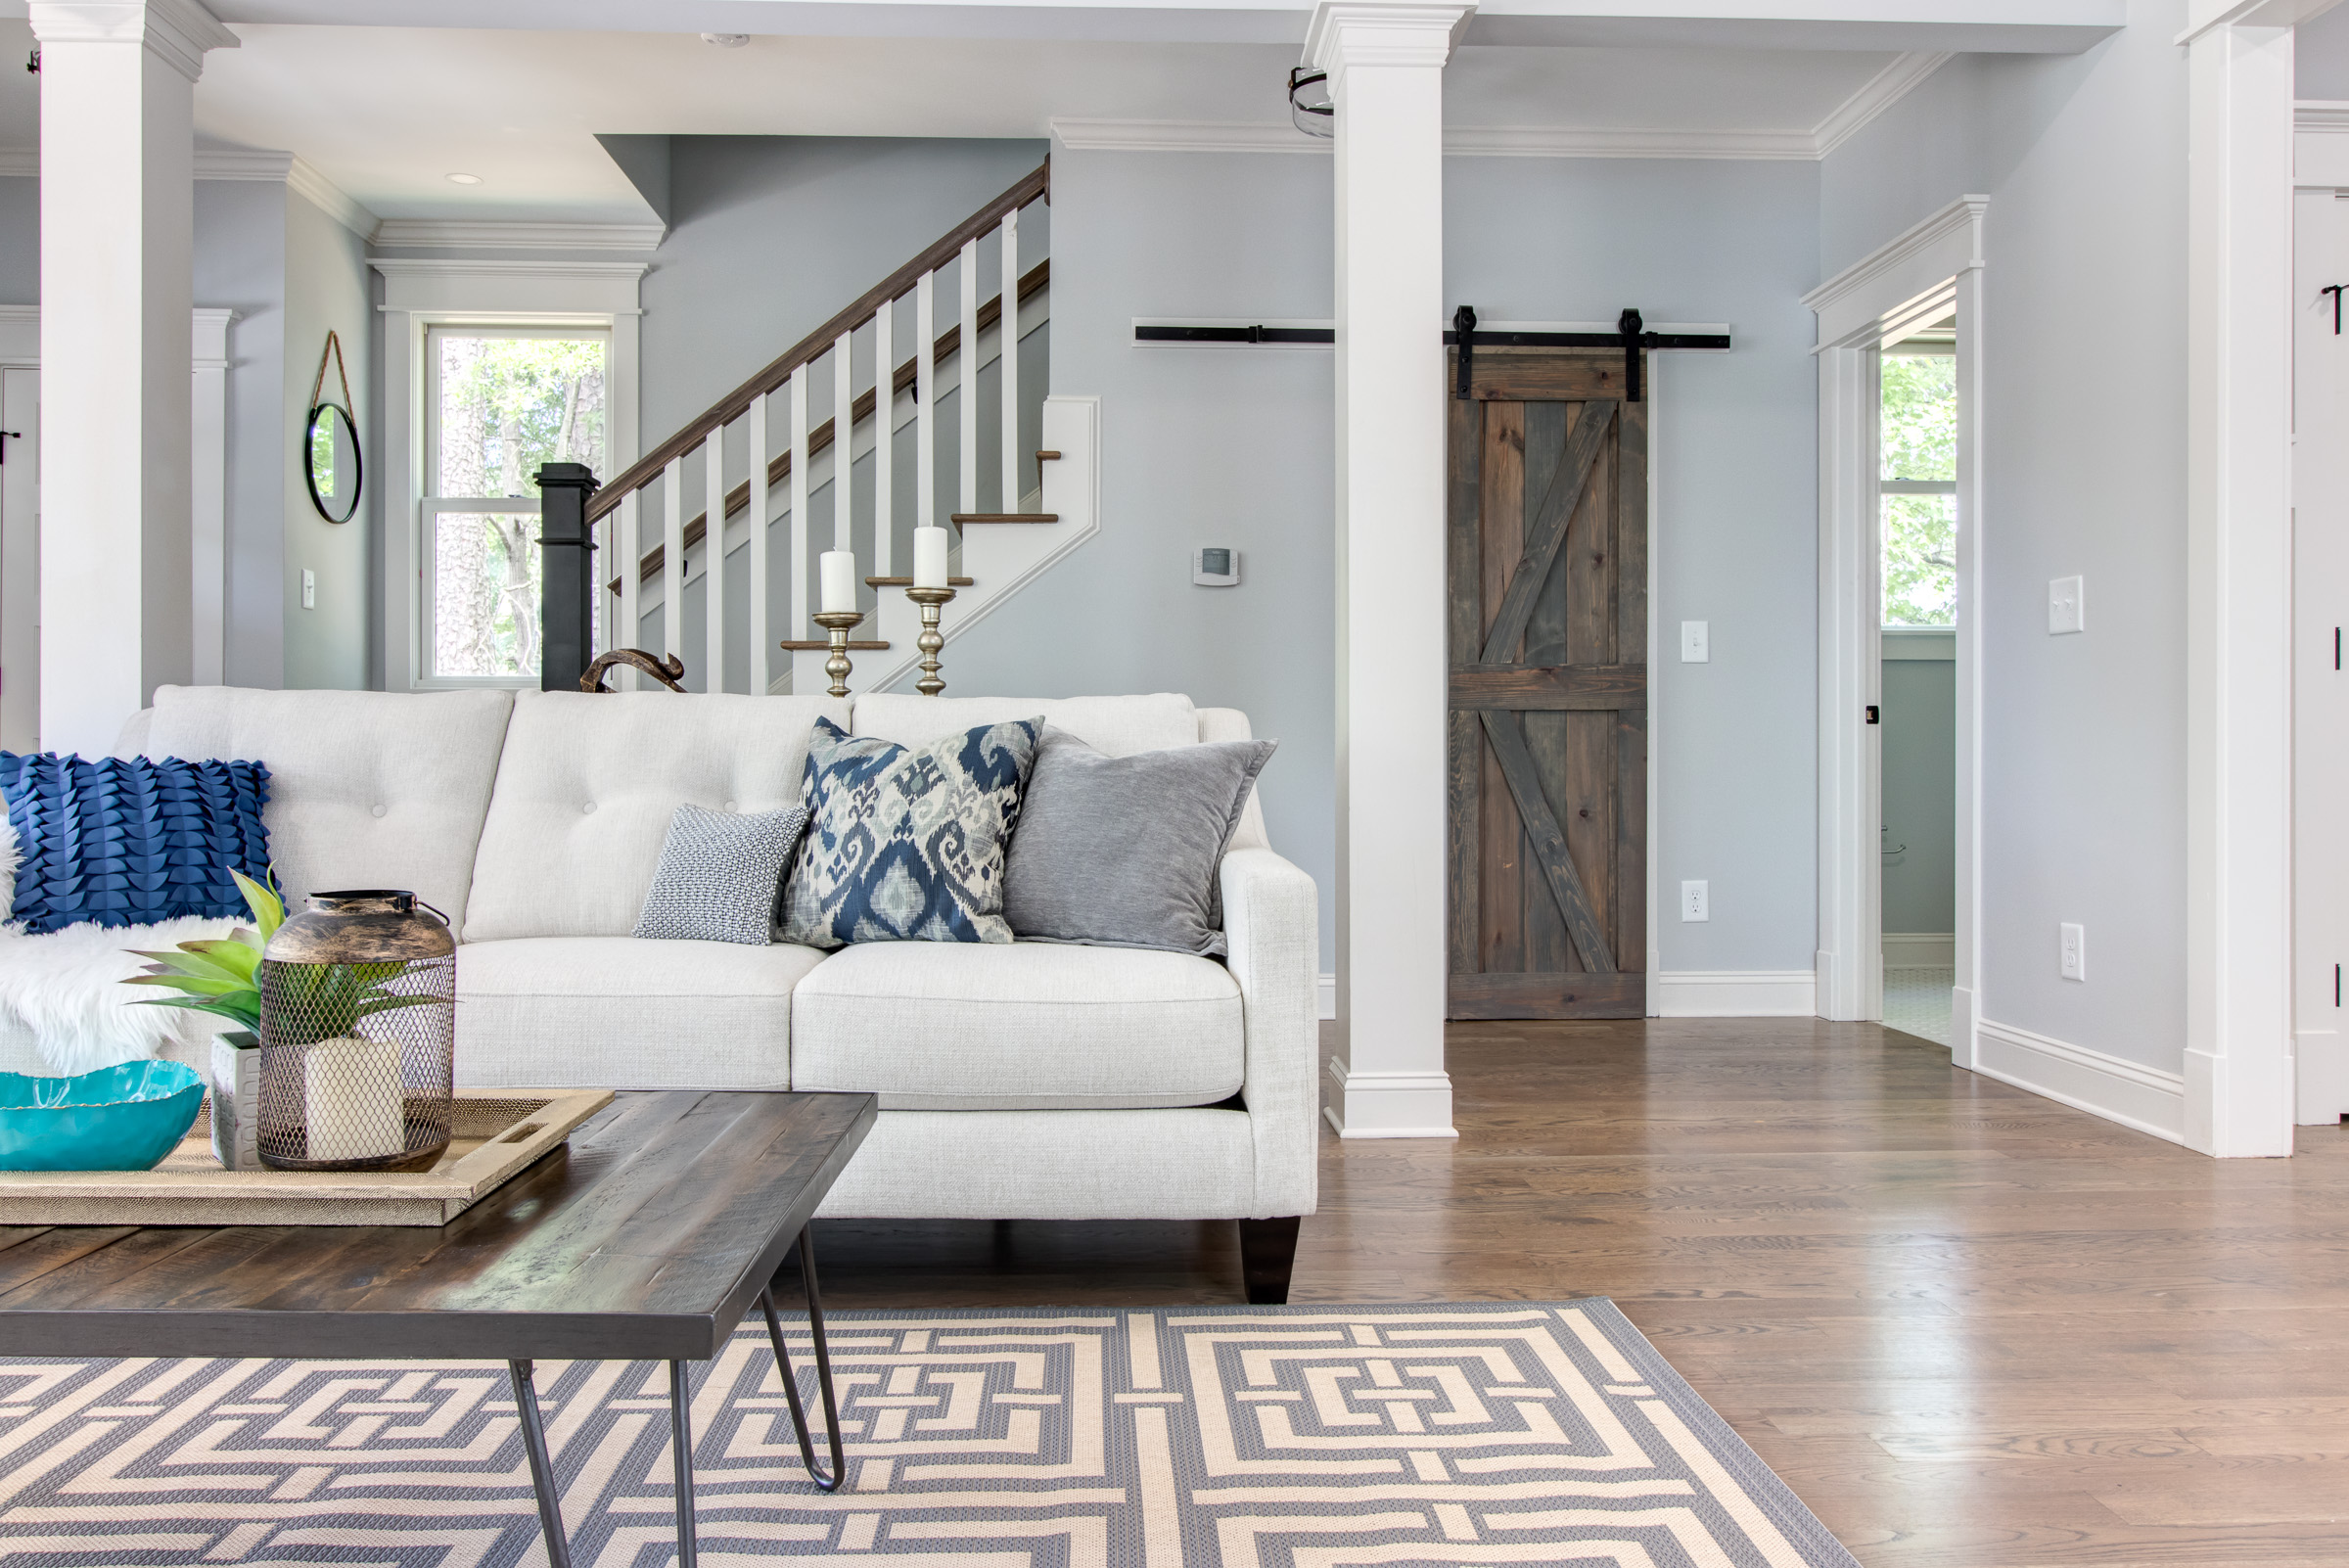 Grey and wood living room with a white couch and barn door closet.